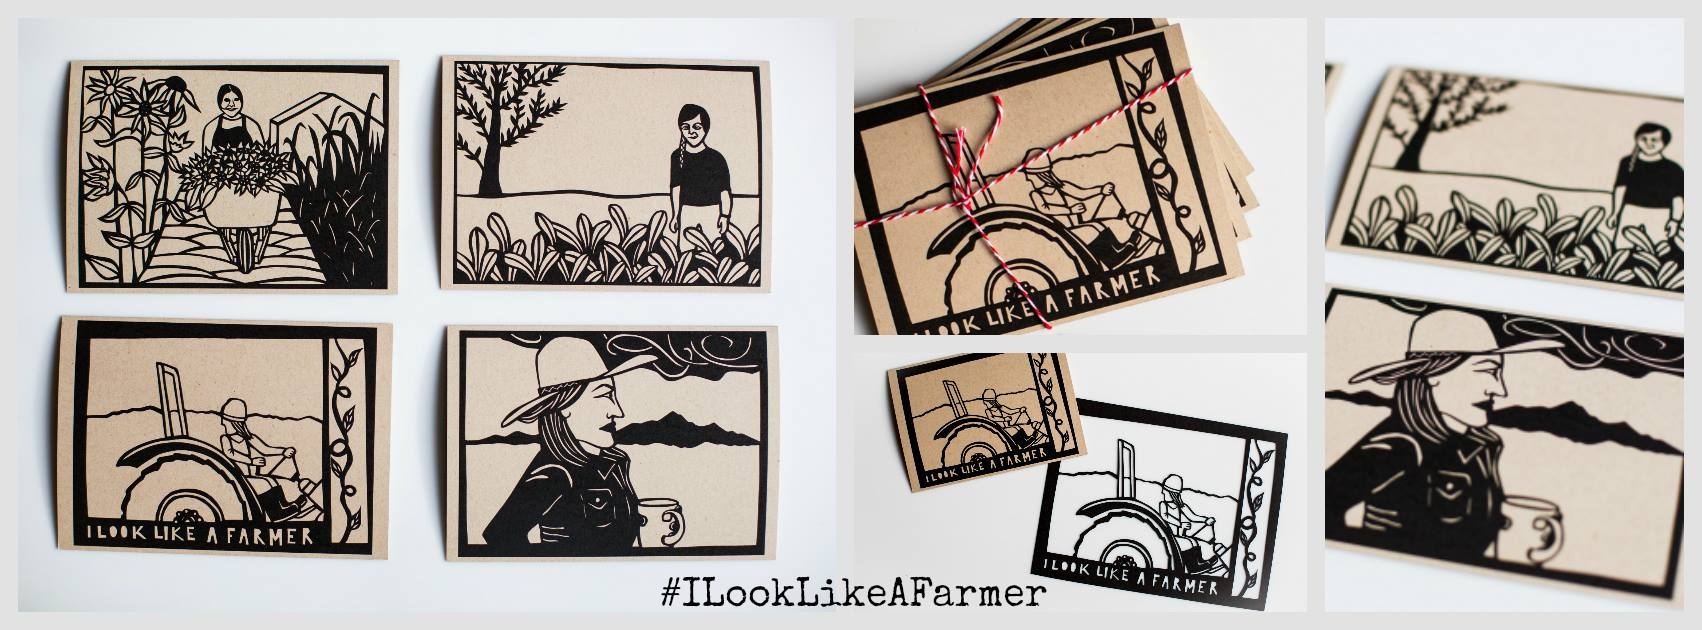 The  #ILookLikeAFarmer 5x7 limited edition notecard series to benefit women in agriculture around the globe.  We collaborated with artist Anna Brones for this project - she created four papercuts, inspired by the women from the  #FemaleFarmerProject . Proceeds will benefit the  Women, Food and Agriculture Network to support their initiatives for US-based female farmers. These limited edition cards were printed on 5x7 notecards by woman-owned, Girlie Press on recycled paper. They are suitable for framing if desired. Link below to purchase your set, they will make amazing gifts that will give back over and over again.